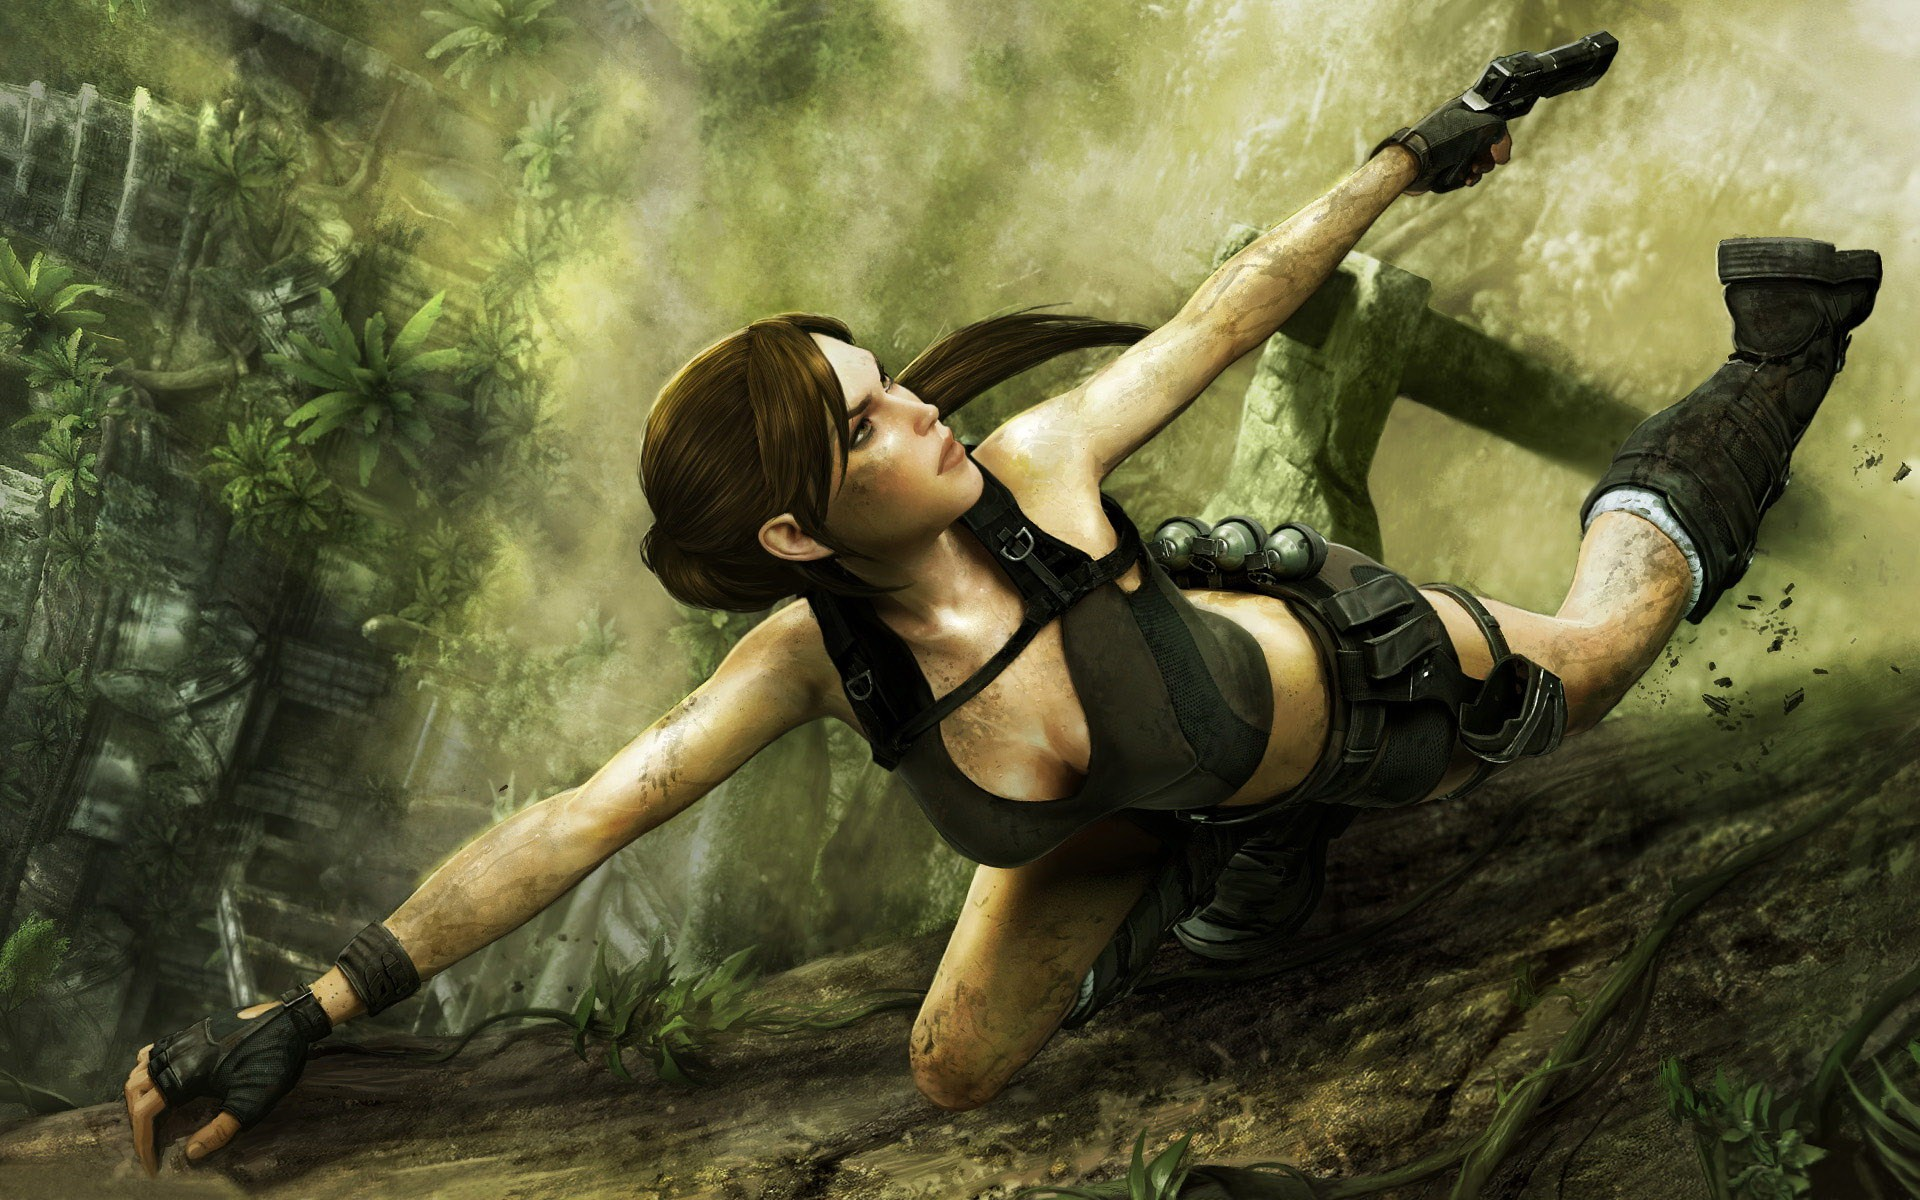 Lara croft fucked nude by elves naked chick